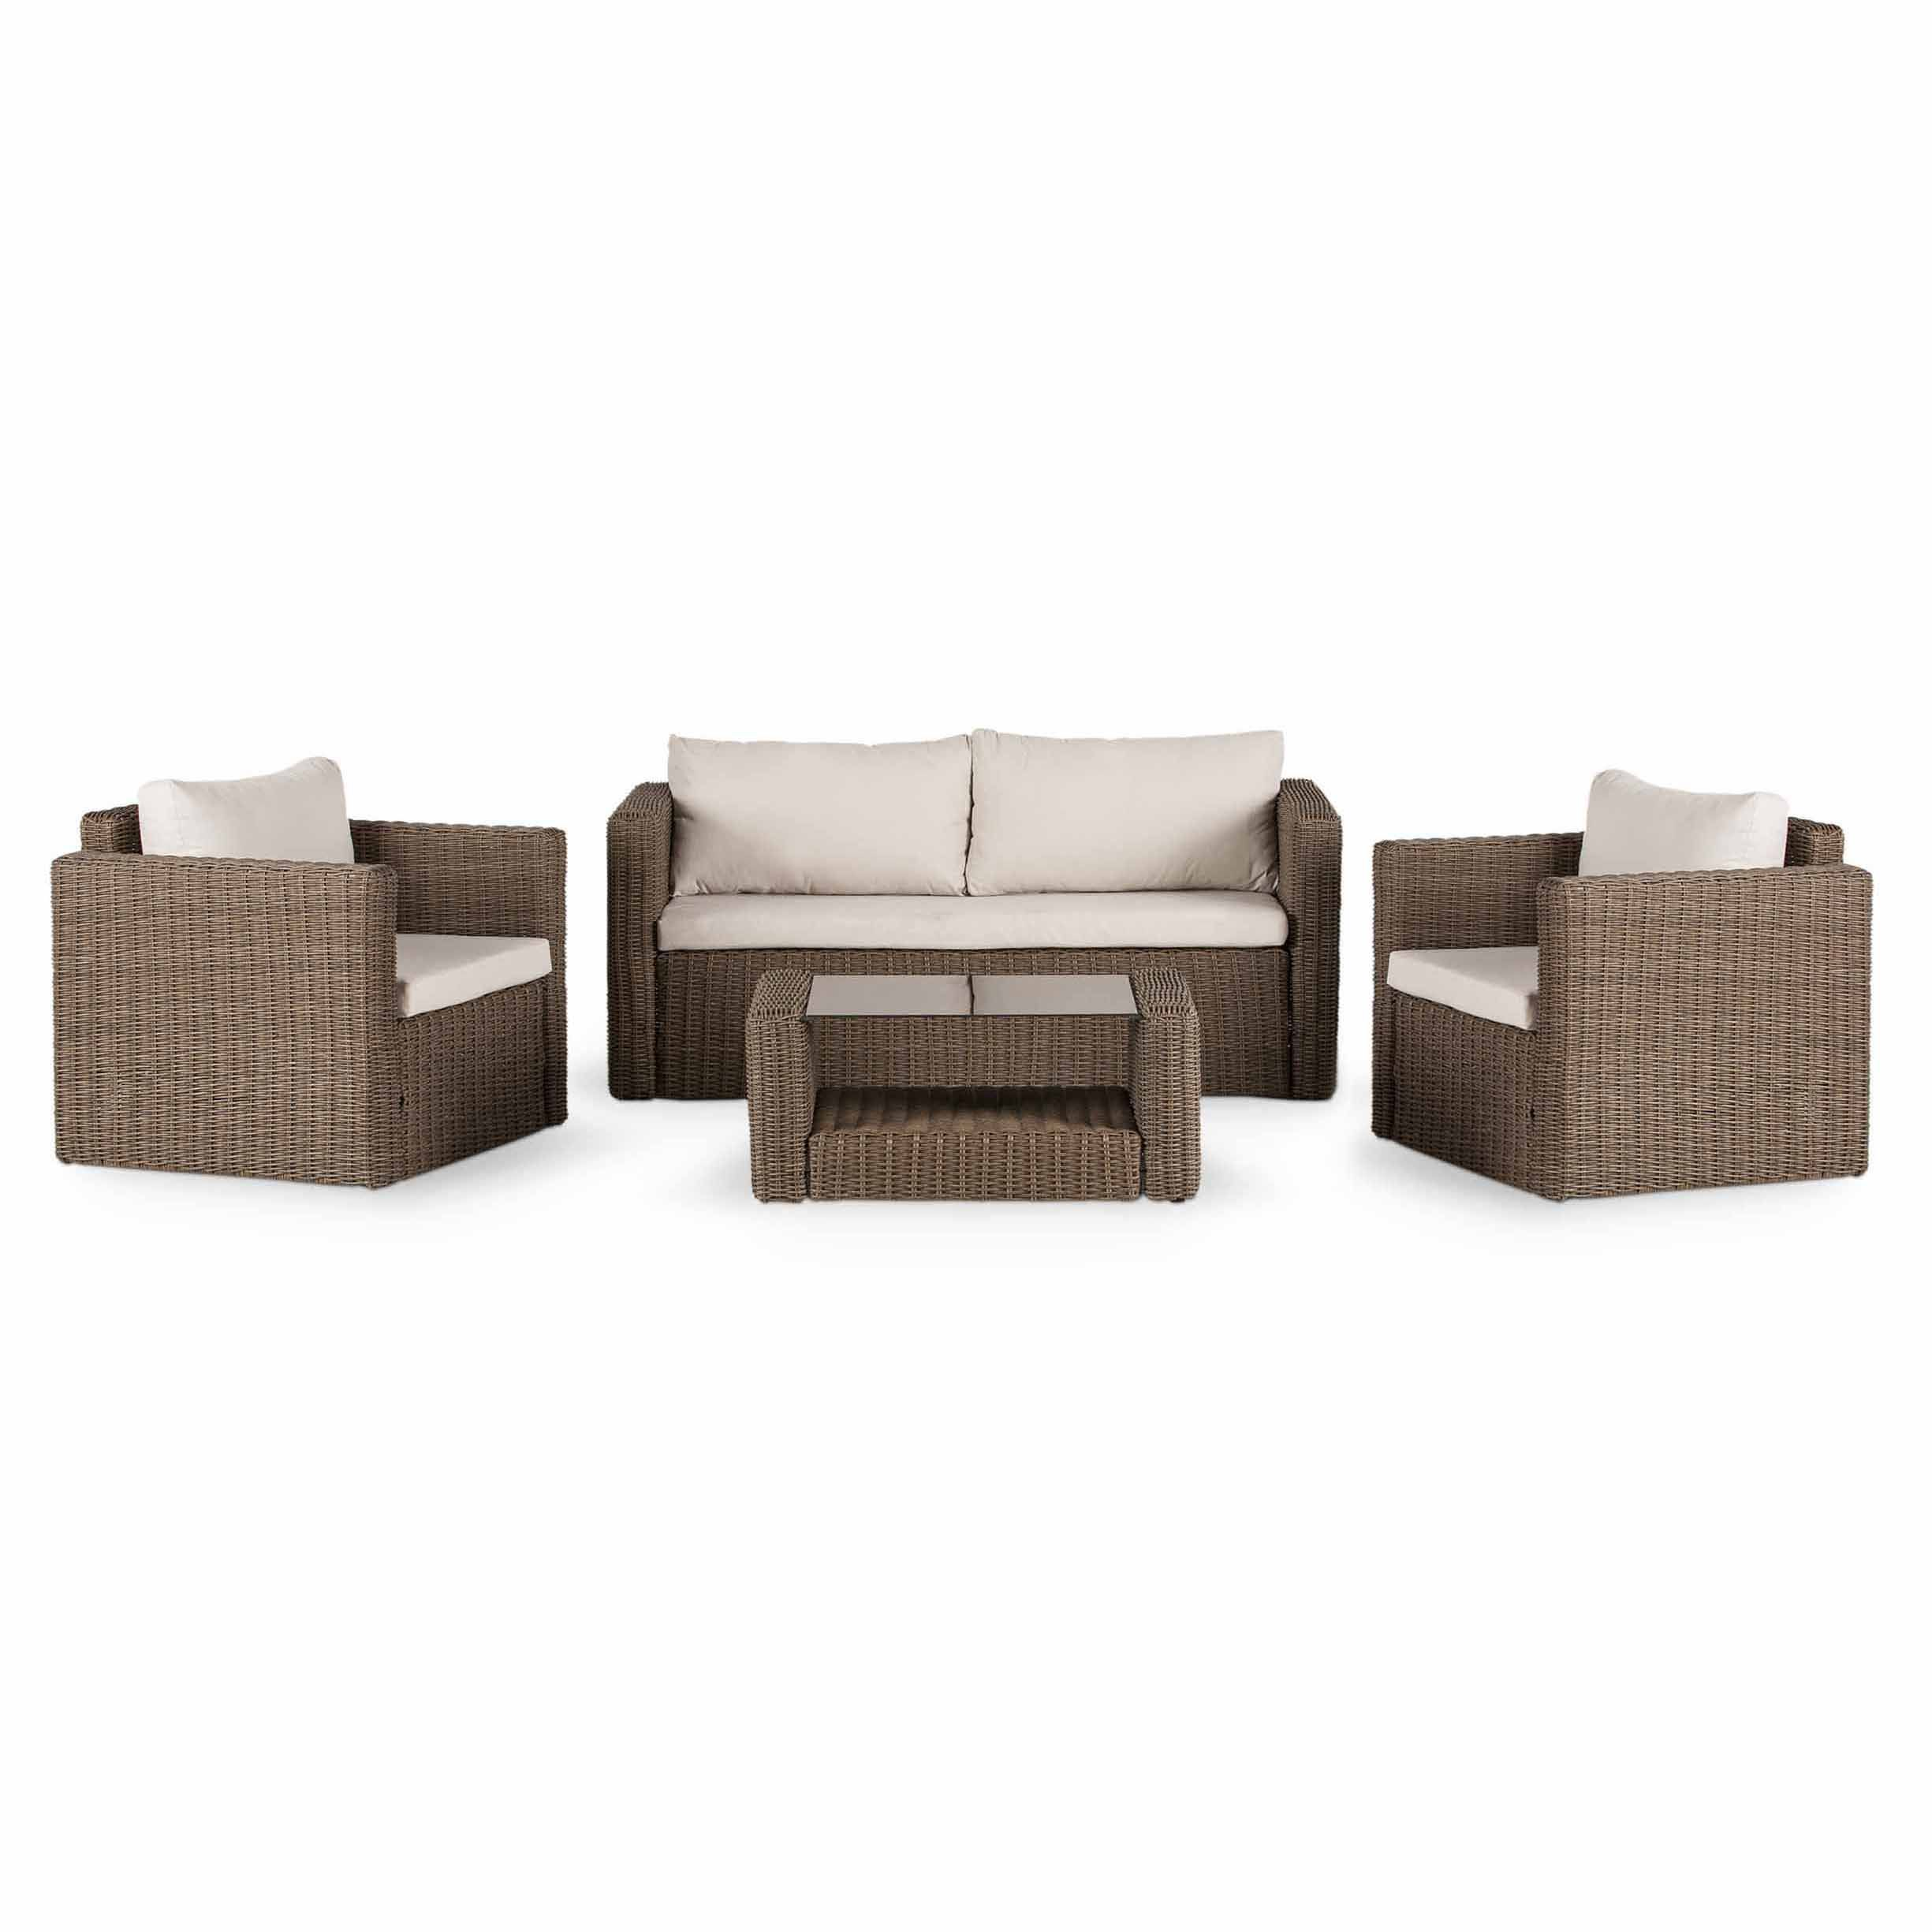 Soron Rattan Sofa B&q Soron Rattan 4 Seater Coffee Set Departments Diy At B Andq